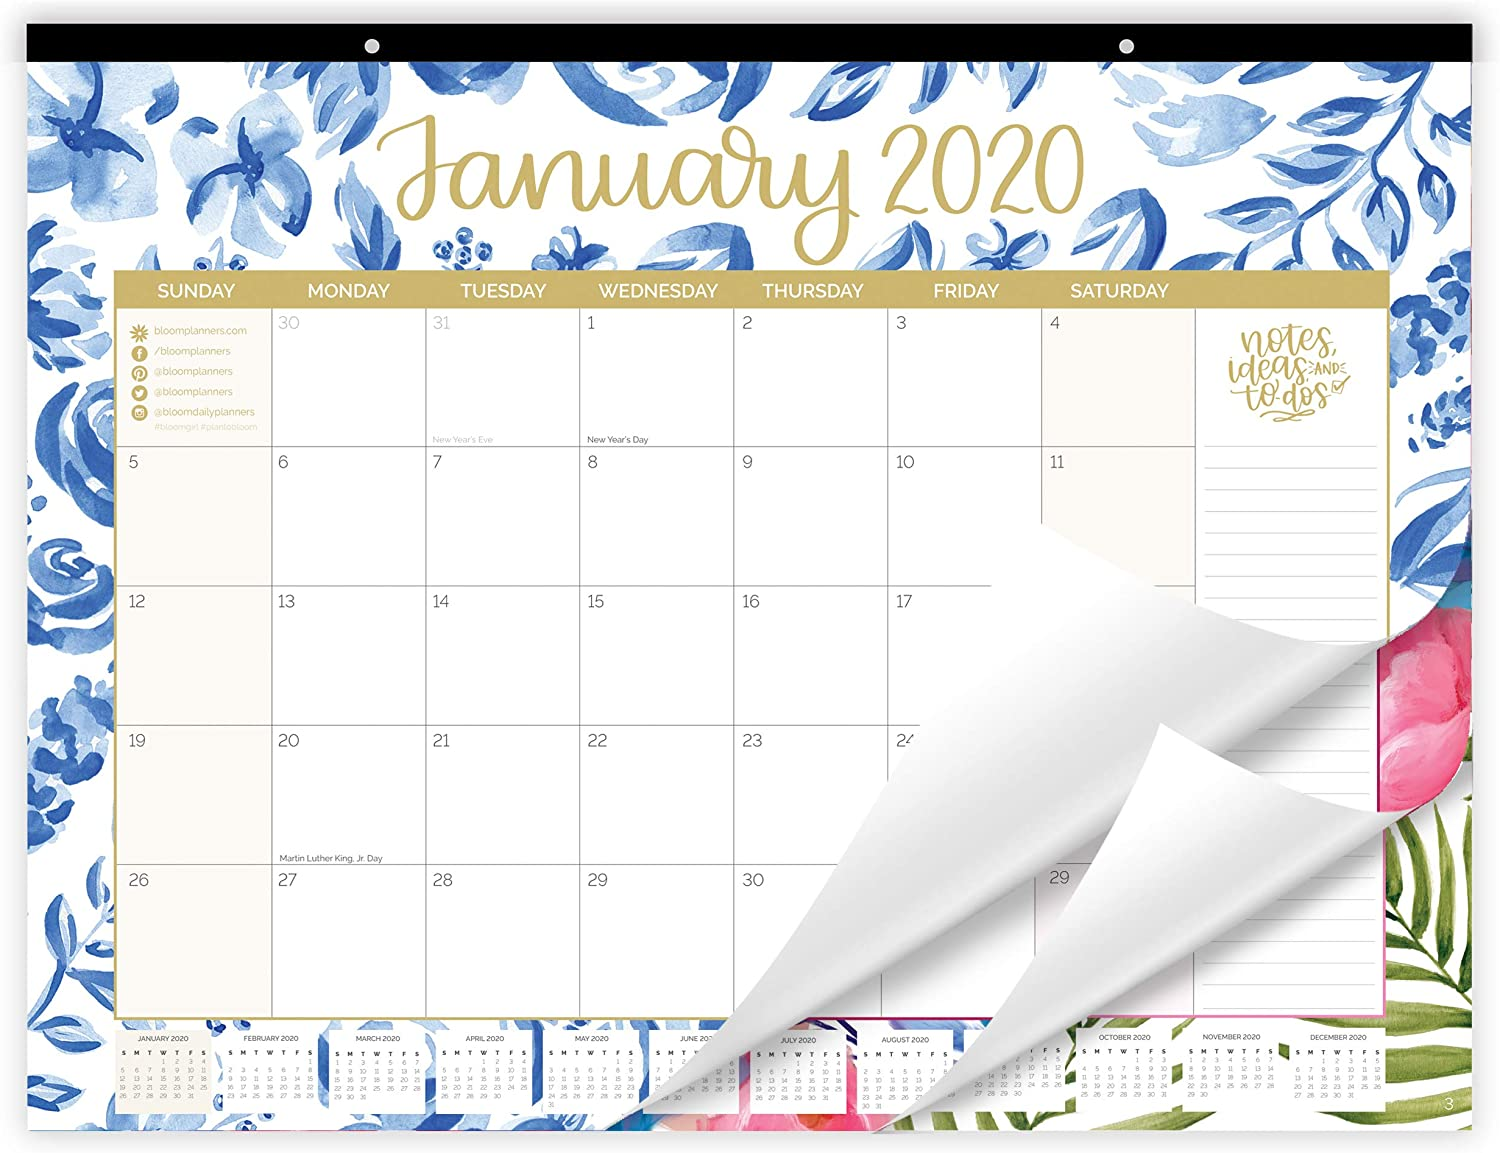 "bloom daily planners 2020 Desk/Wall Monthly Calendar Pad (January 2020 - December 2020) - Large 21"" x 16"" Hanging or Desktop Blotter - Seasonal Designs"